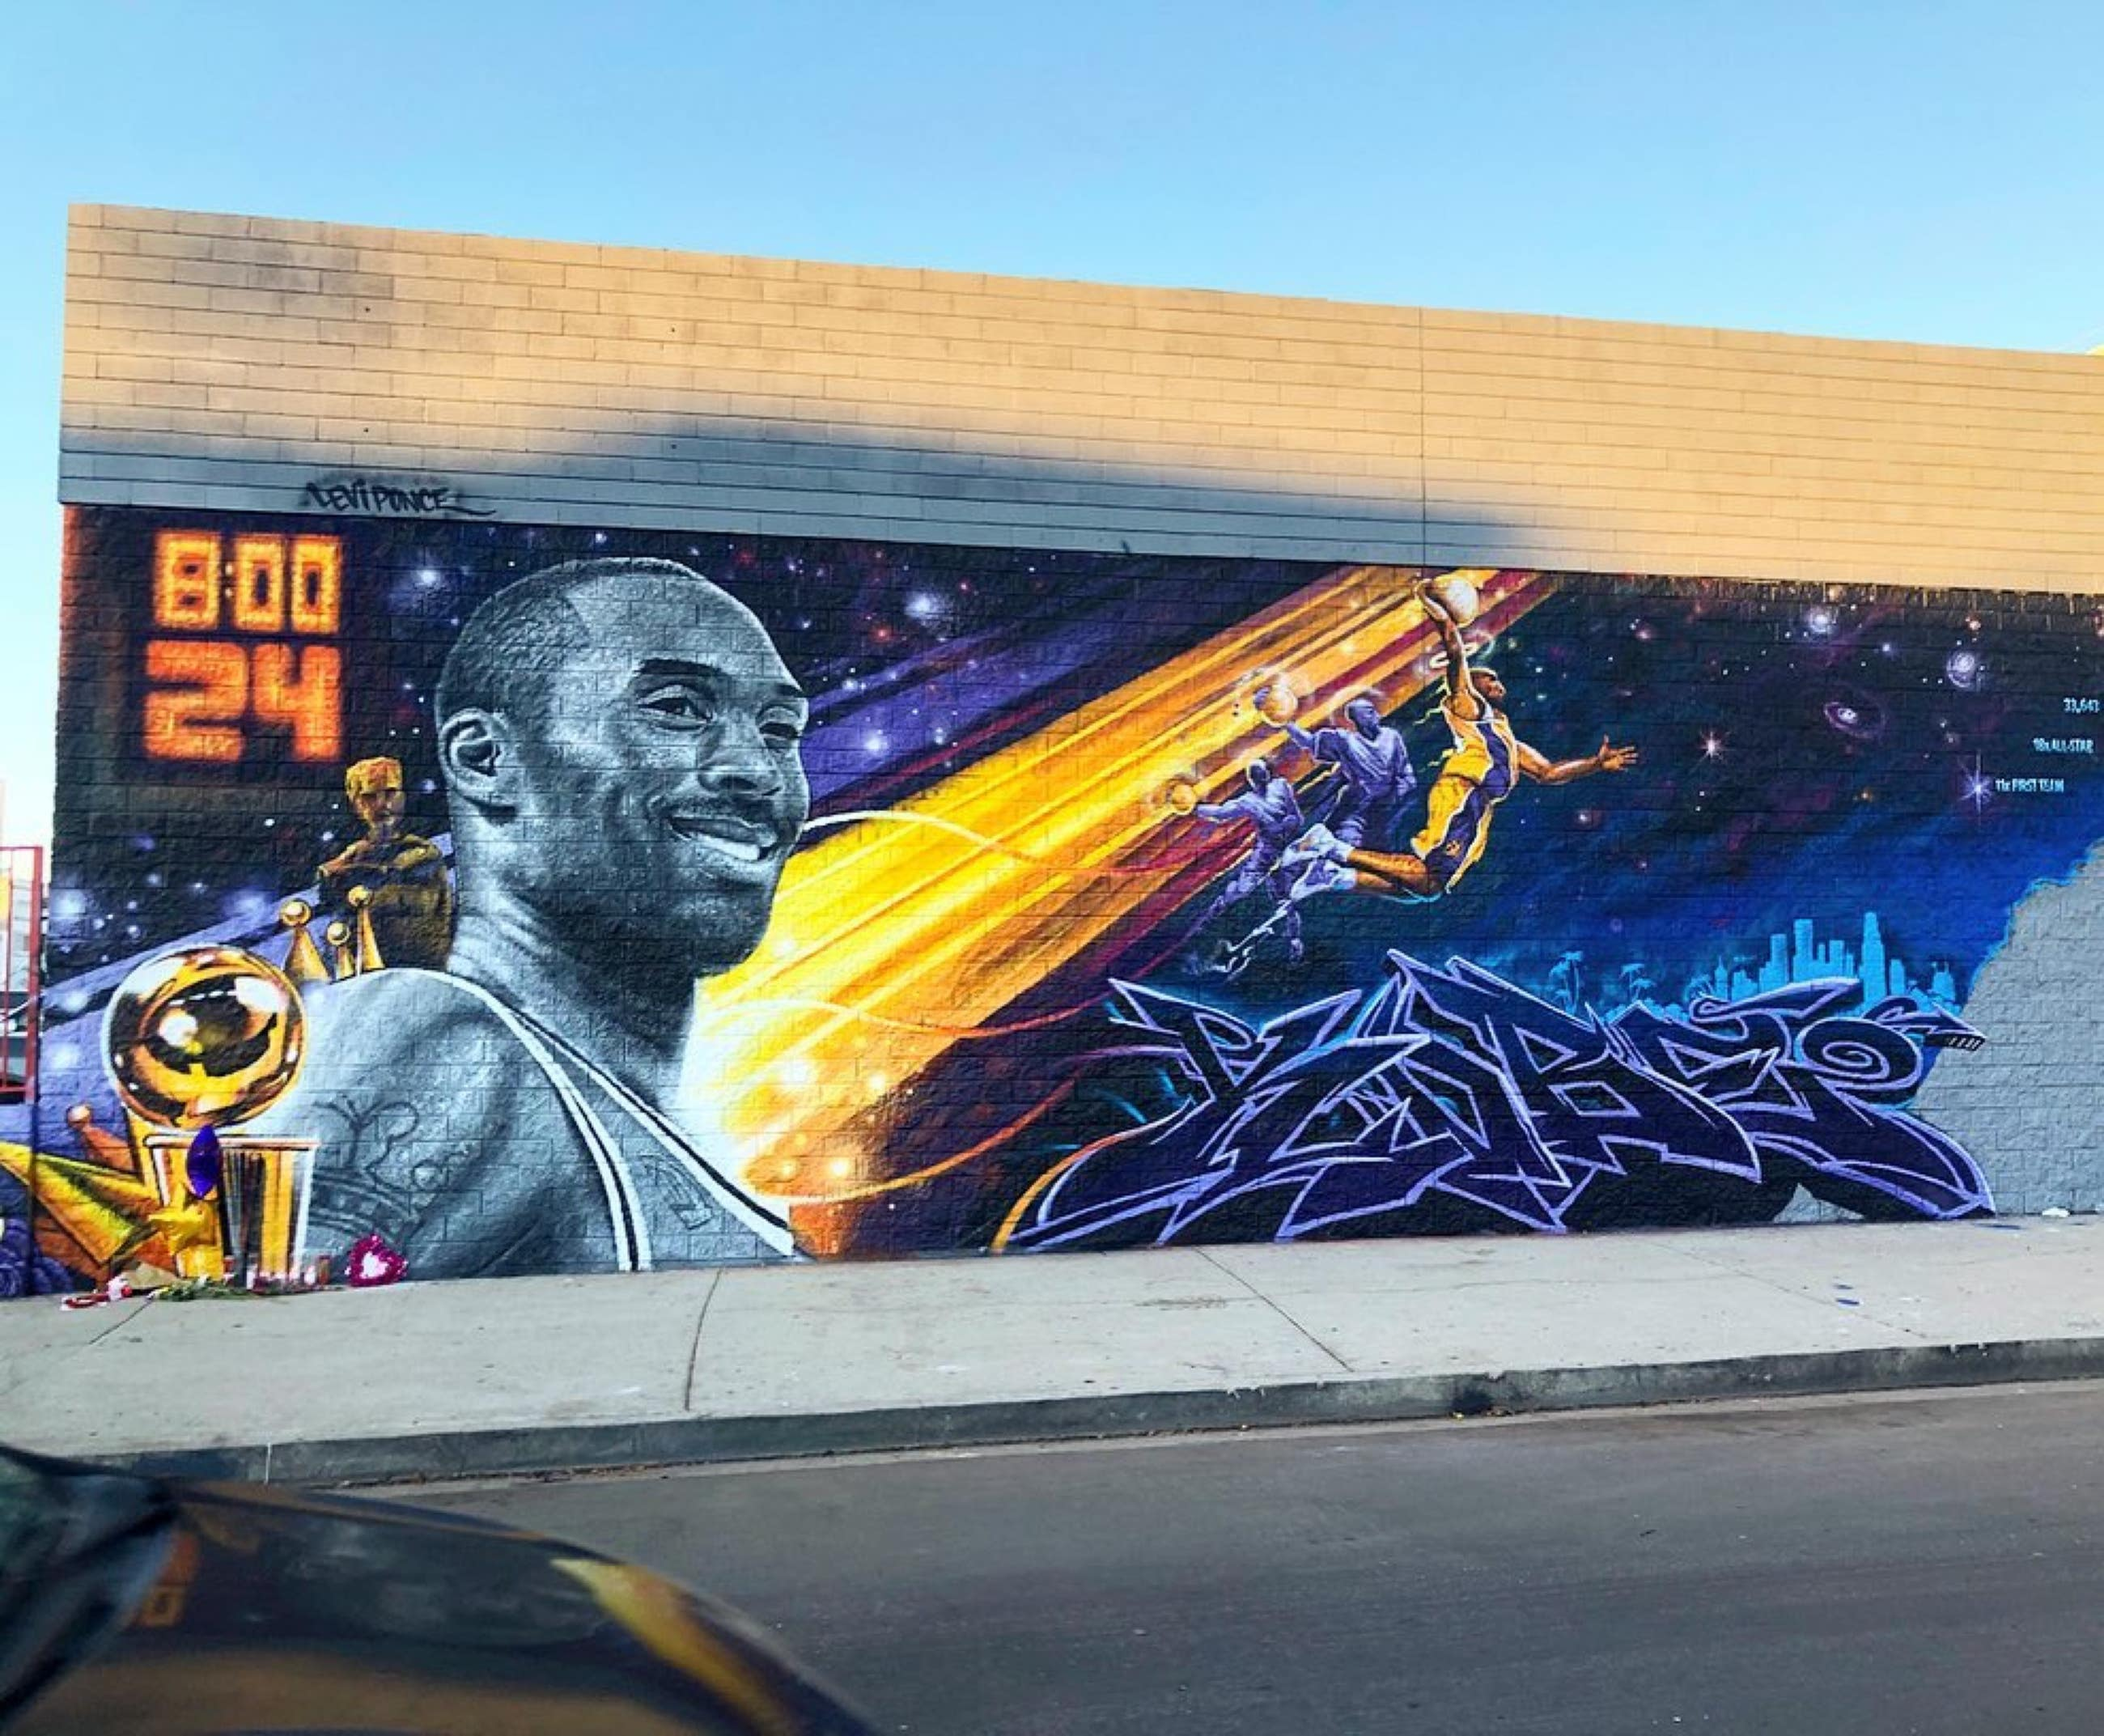 Kobe Bryant mural by Levi Ponce and others at Custom Auto Craft in Hancock Park